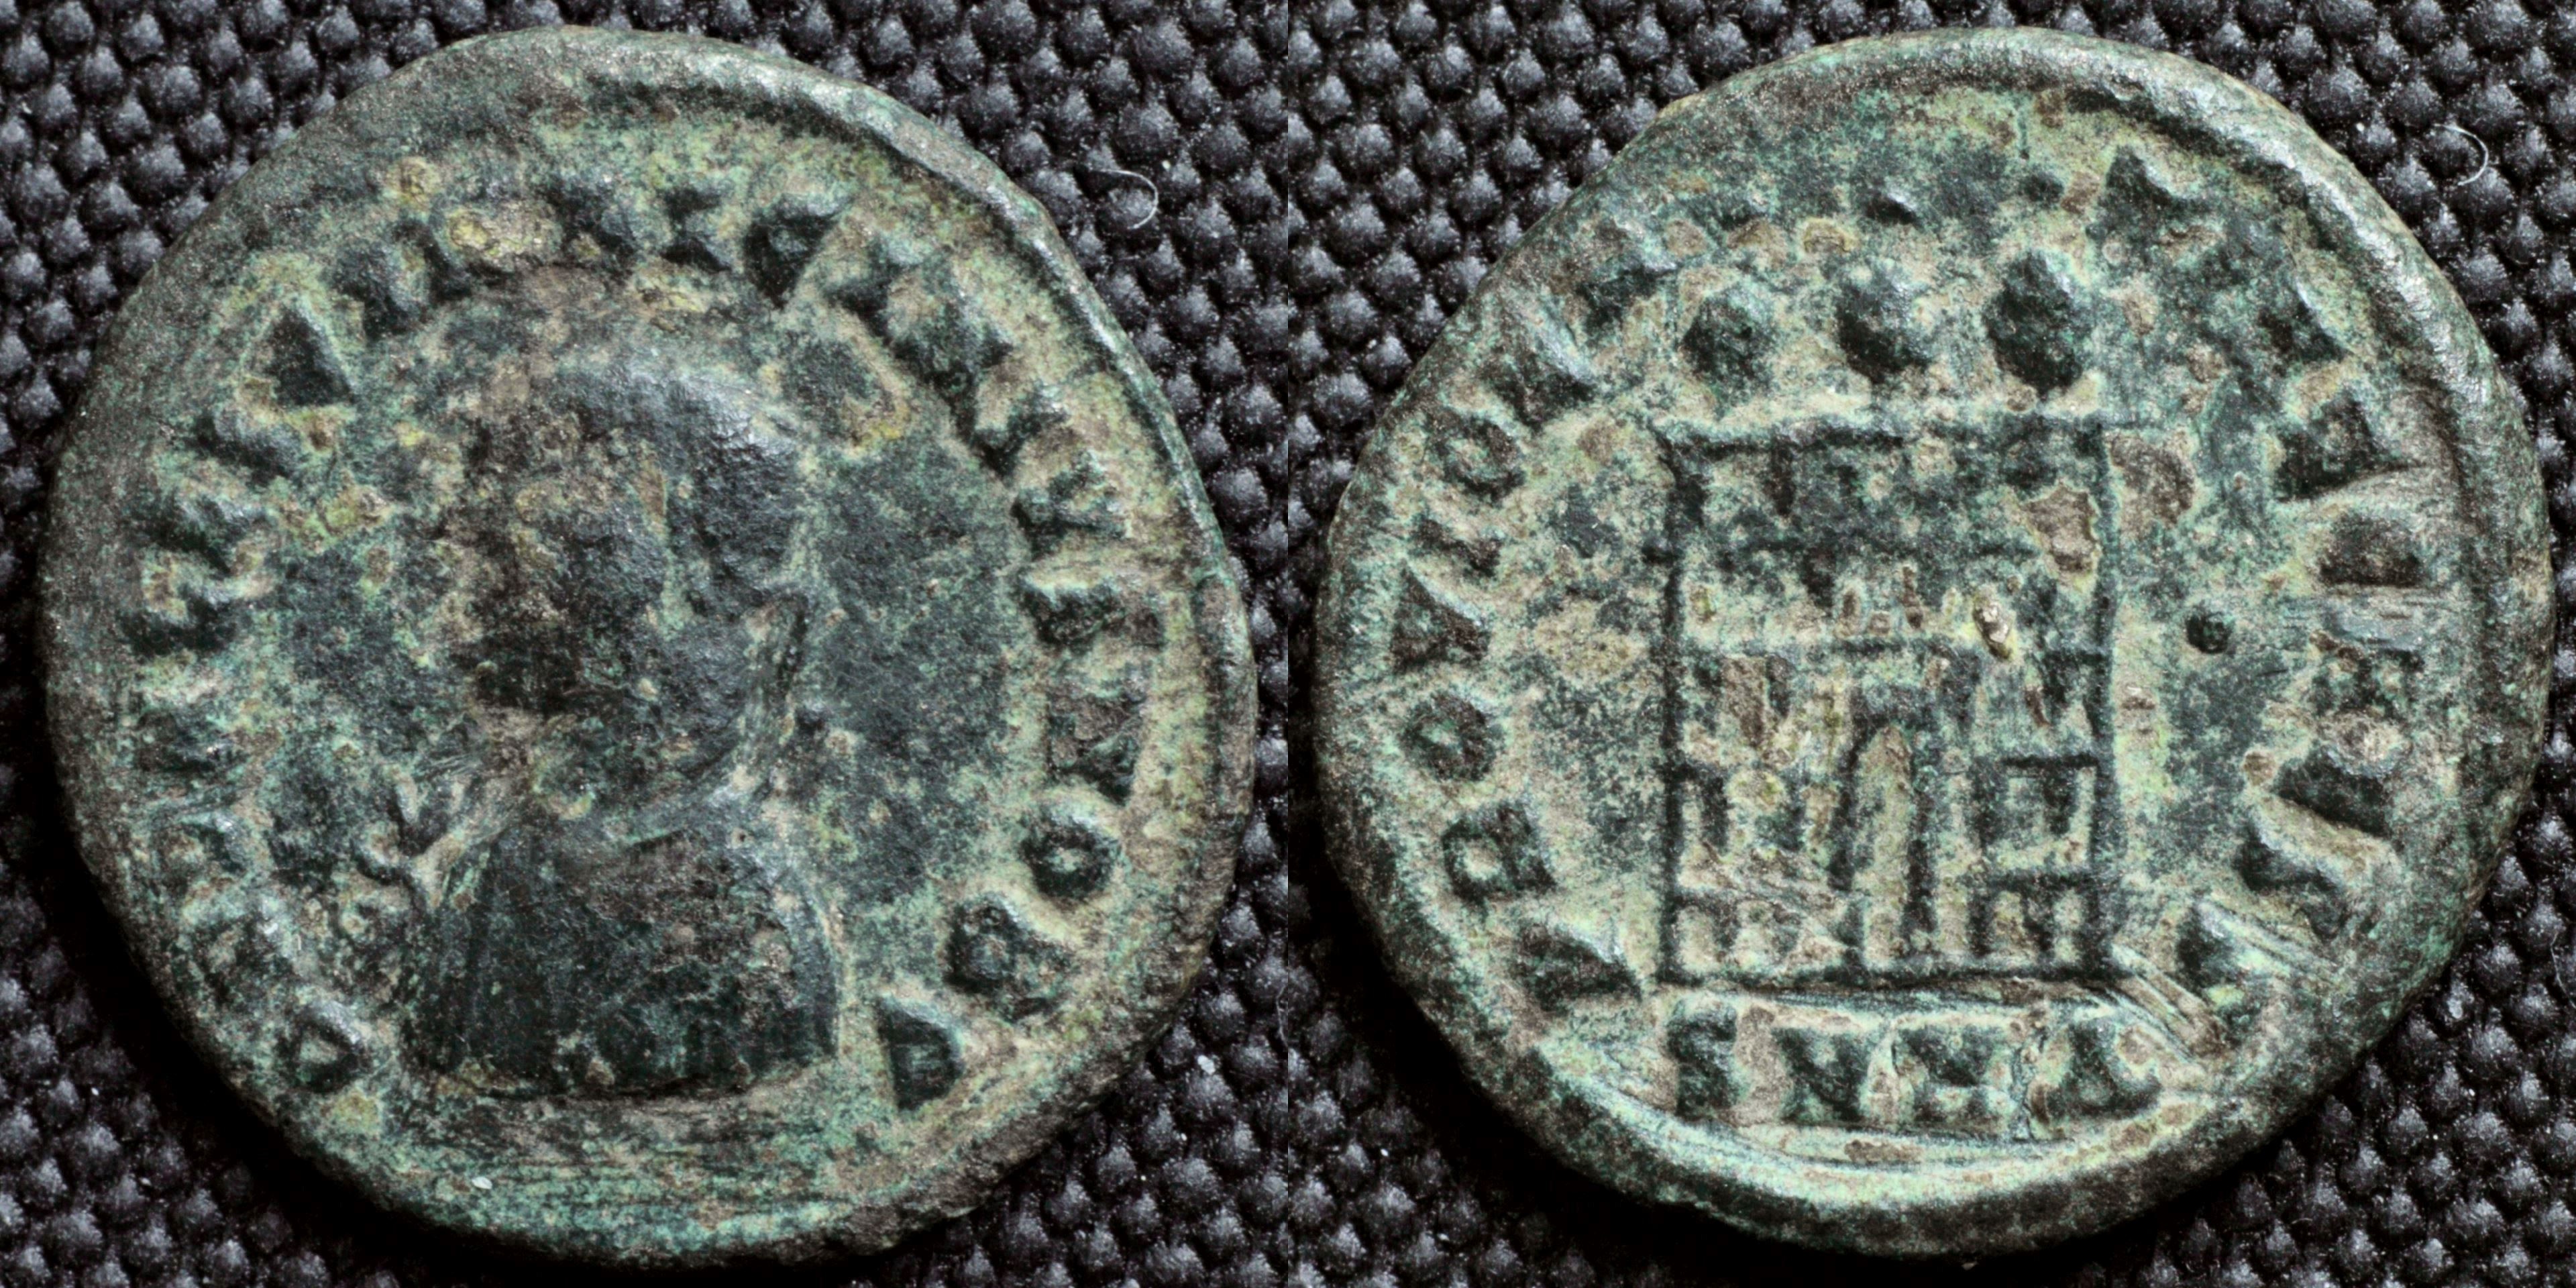 /Files/Images/Coinsite/CoinDB/140_Licinius_II_Heraclea.jpg